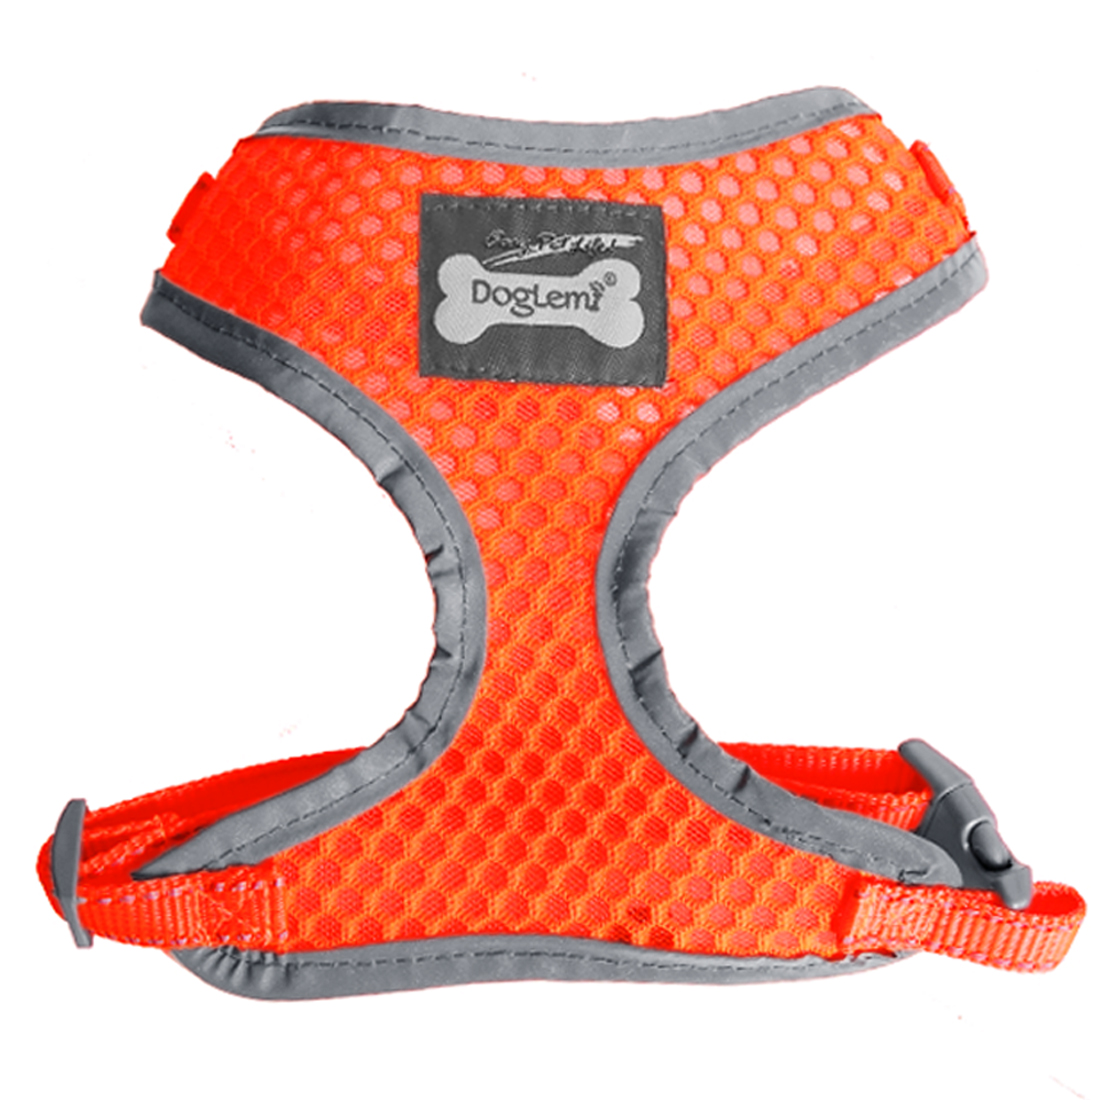 Adjustable Breathable Soft Air Mesh Puppy Dog Harness Walk Collar Vest Orange M